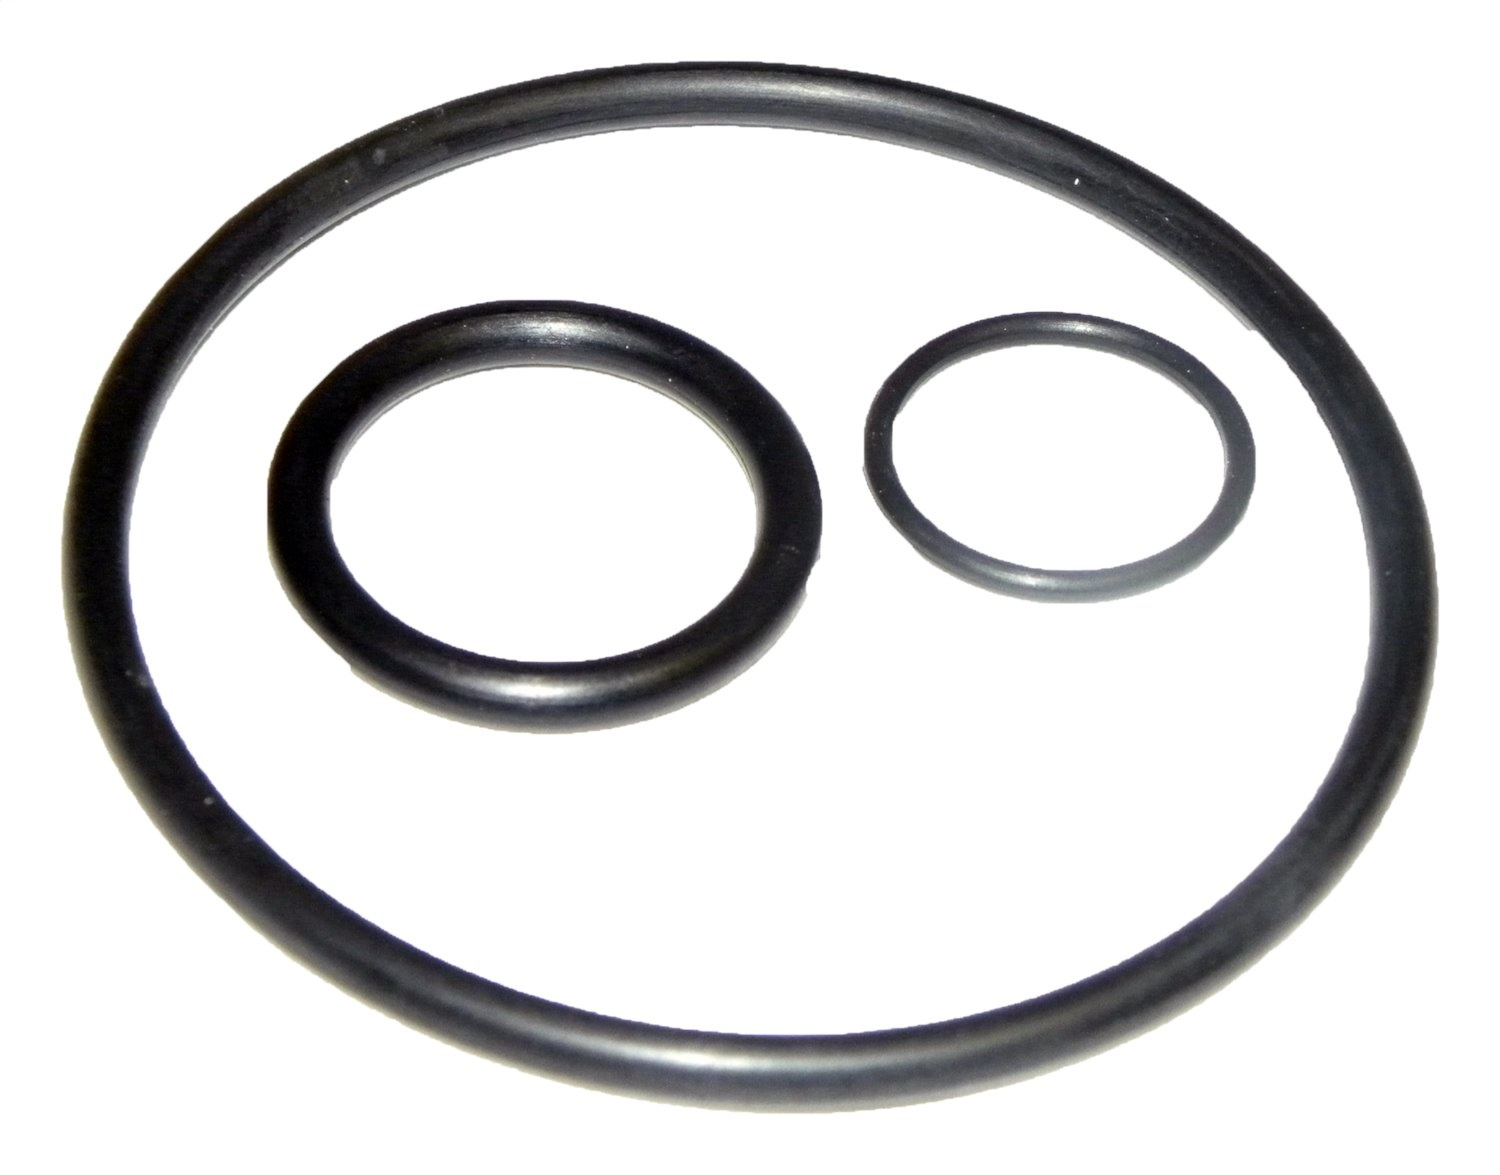 Crown Automotive 4720363 Oil Filter Adapter Seal Kit